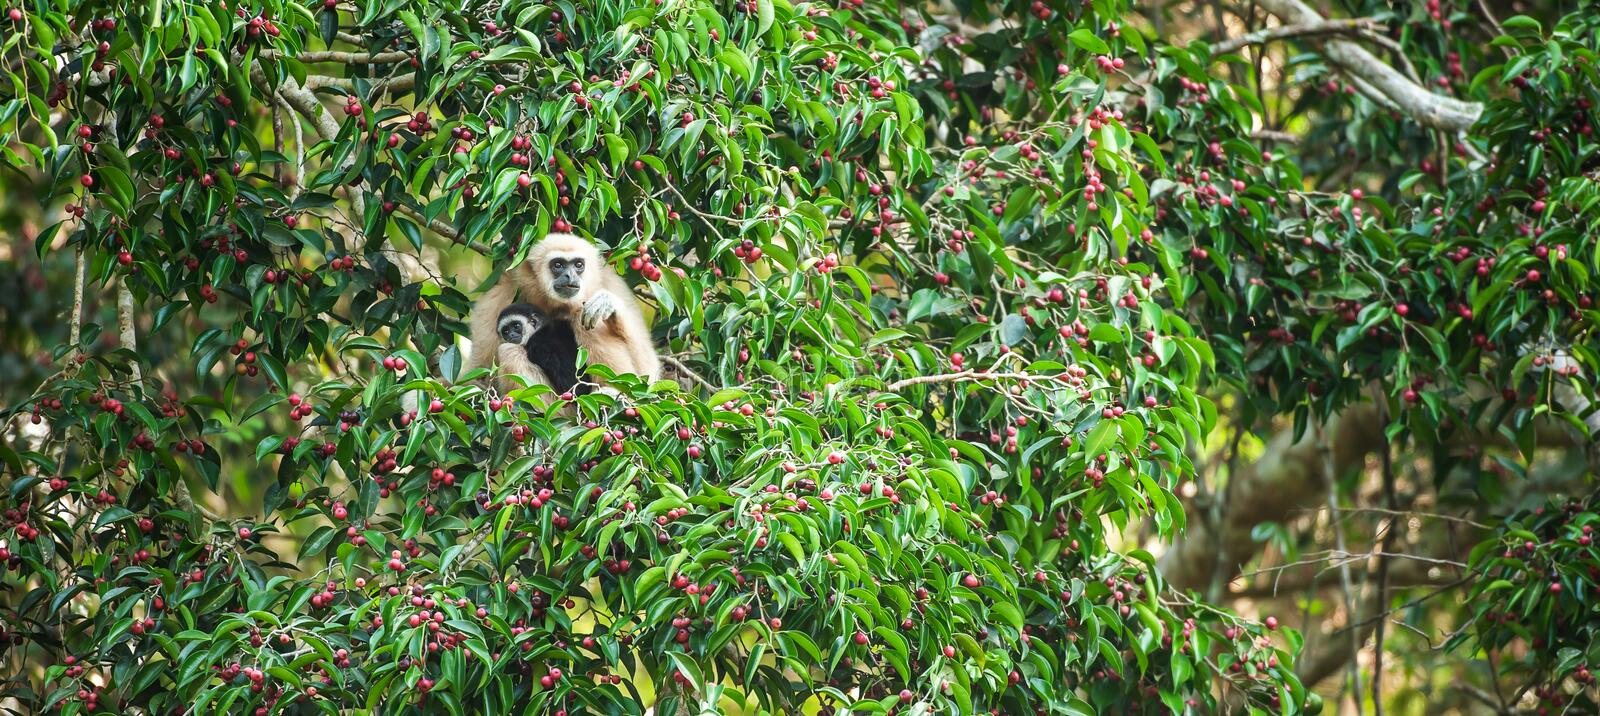 A mother Lar Gibbon or White-handed Gibbon with baby feeding on the figs tree, colorful ripe fruits of fig in season. Khao Yai, royalty free stock images